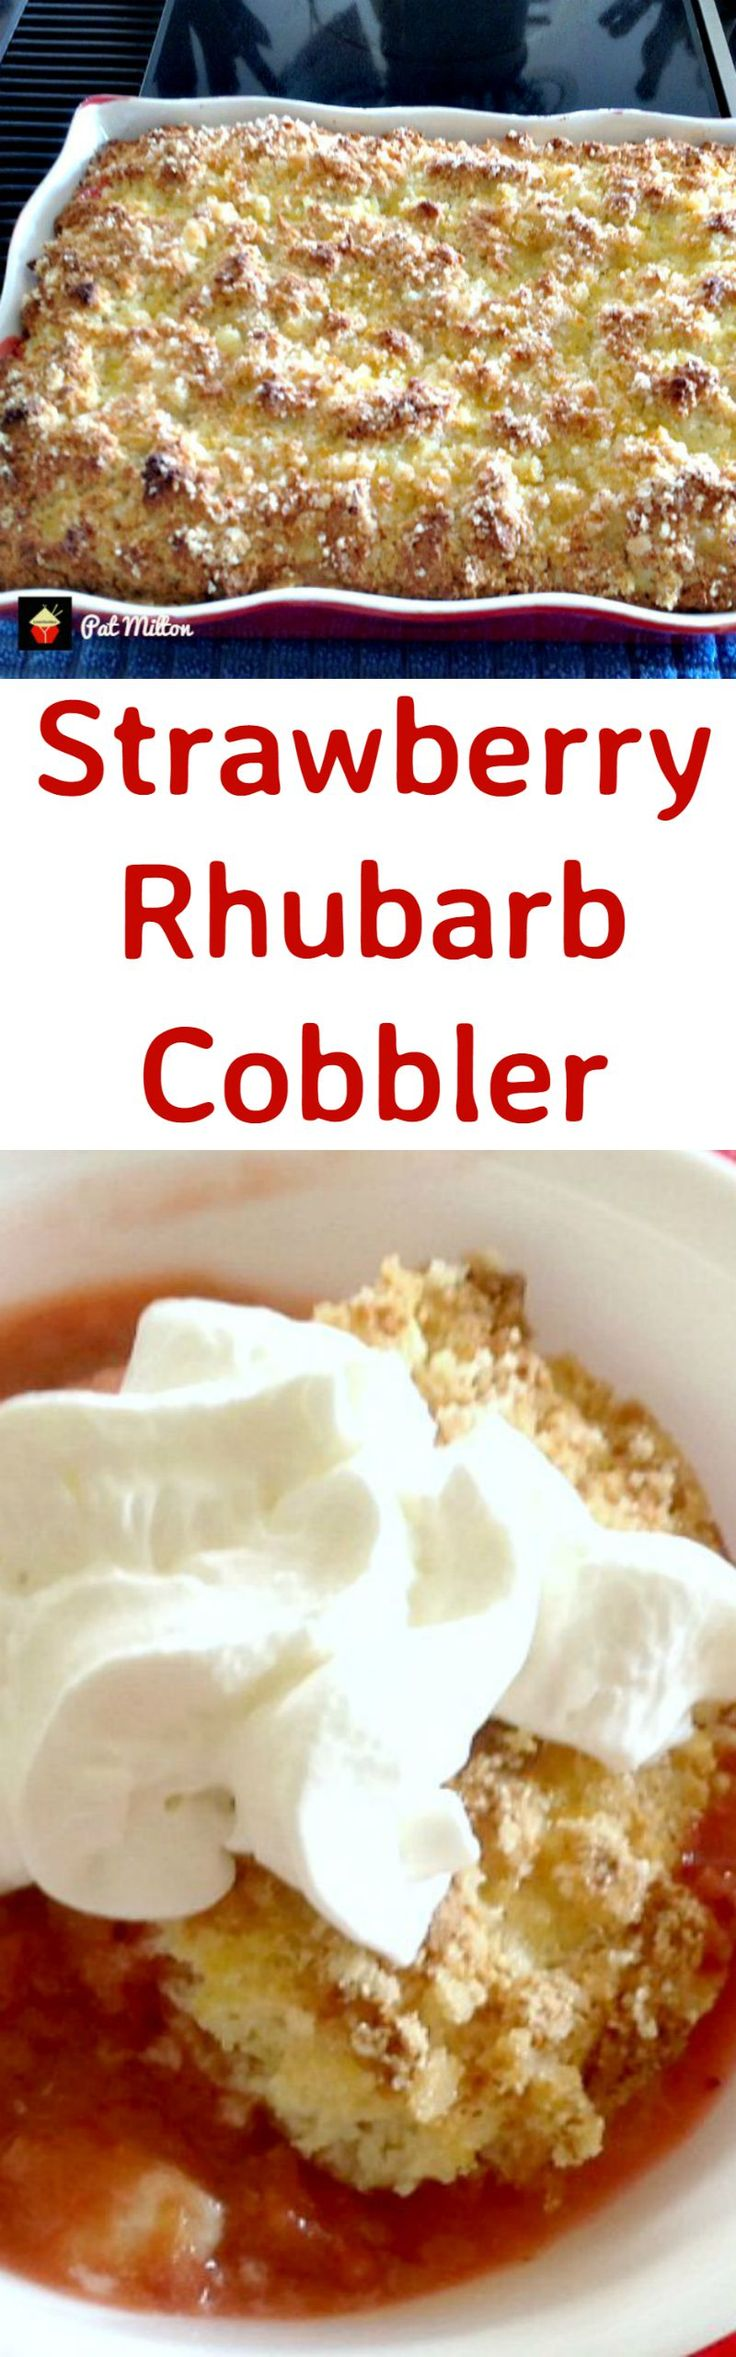 Strawberry Rhubarb Cobbler. This is a delicious dessert, and flexible with the fillings so you could swap the fruits to your choice! Great served warm with some whipped cream or ice cream and also freezer friendly. Yummy! | Lovefoodies.com